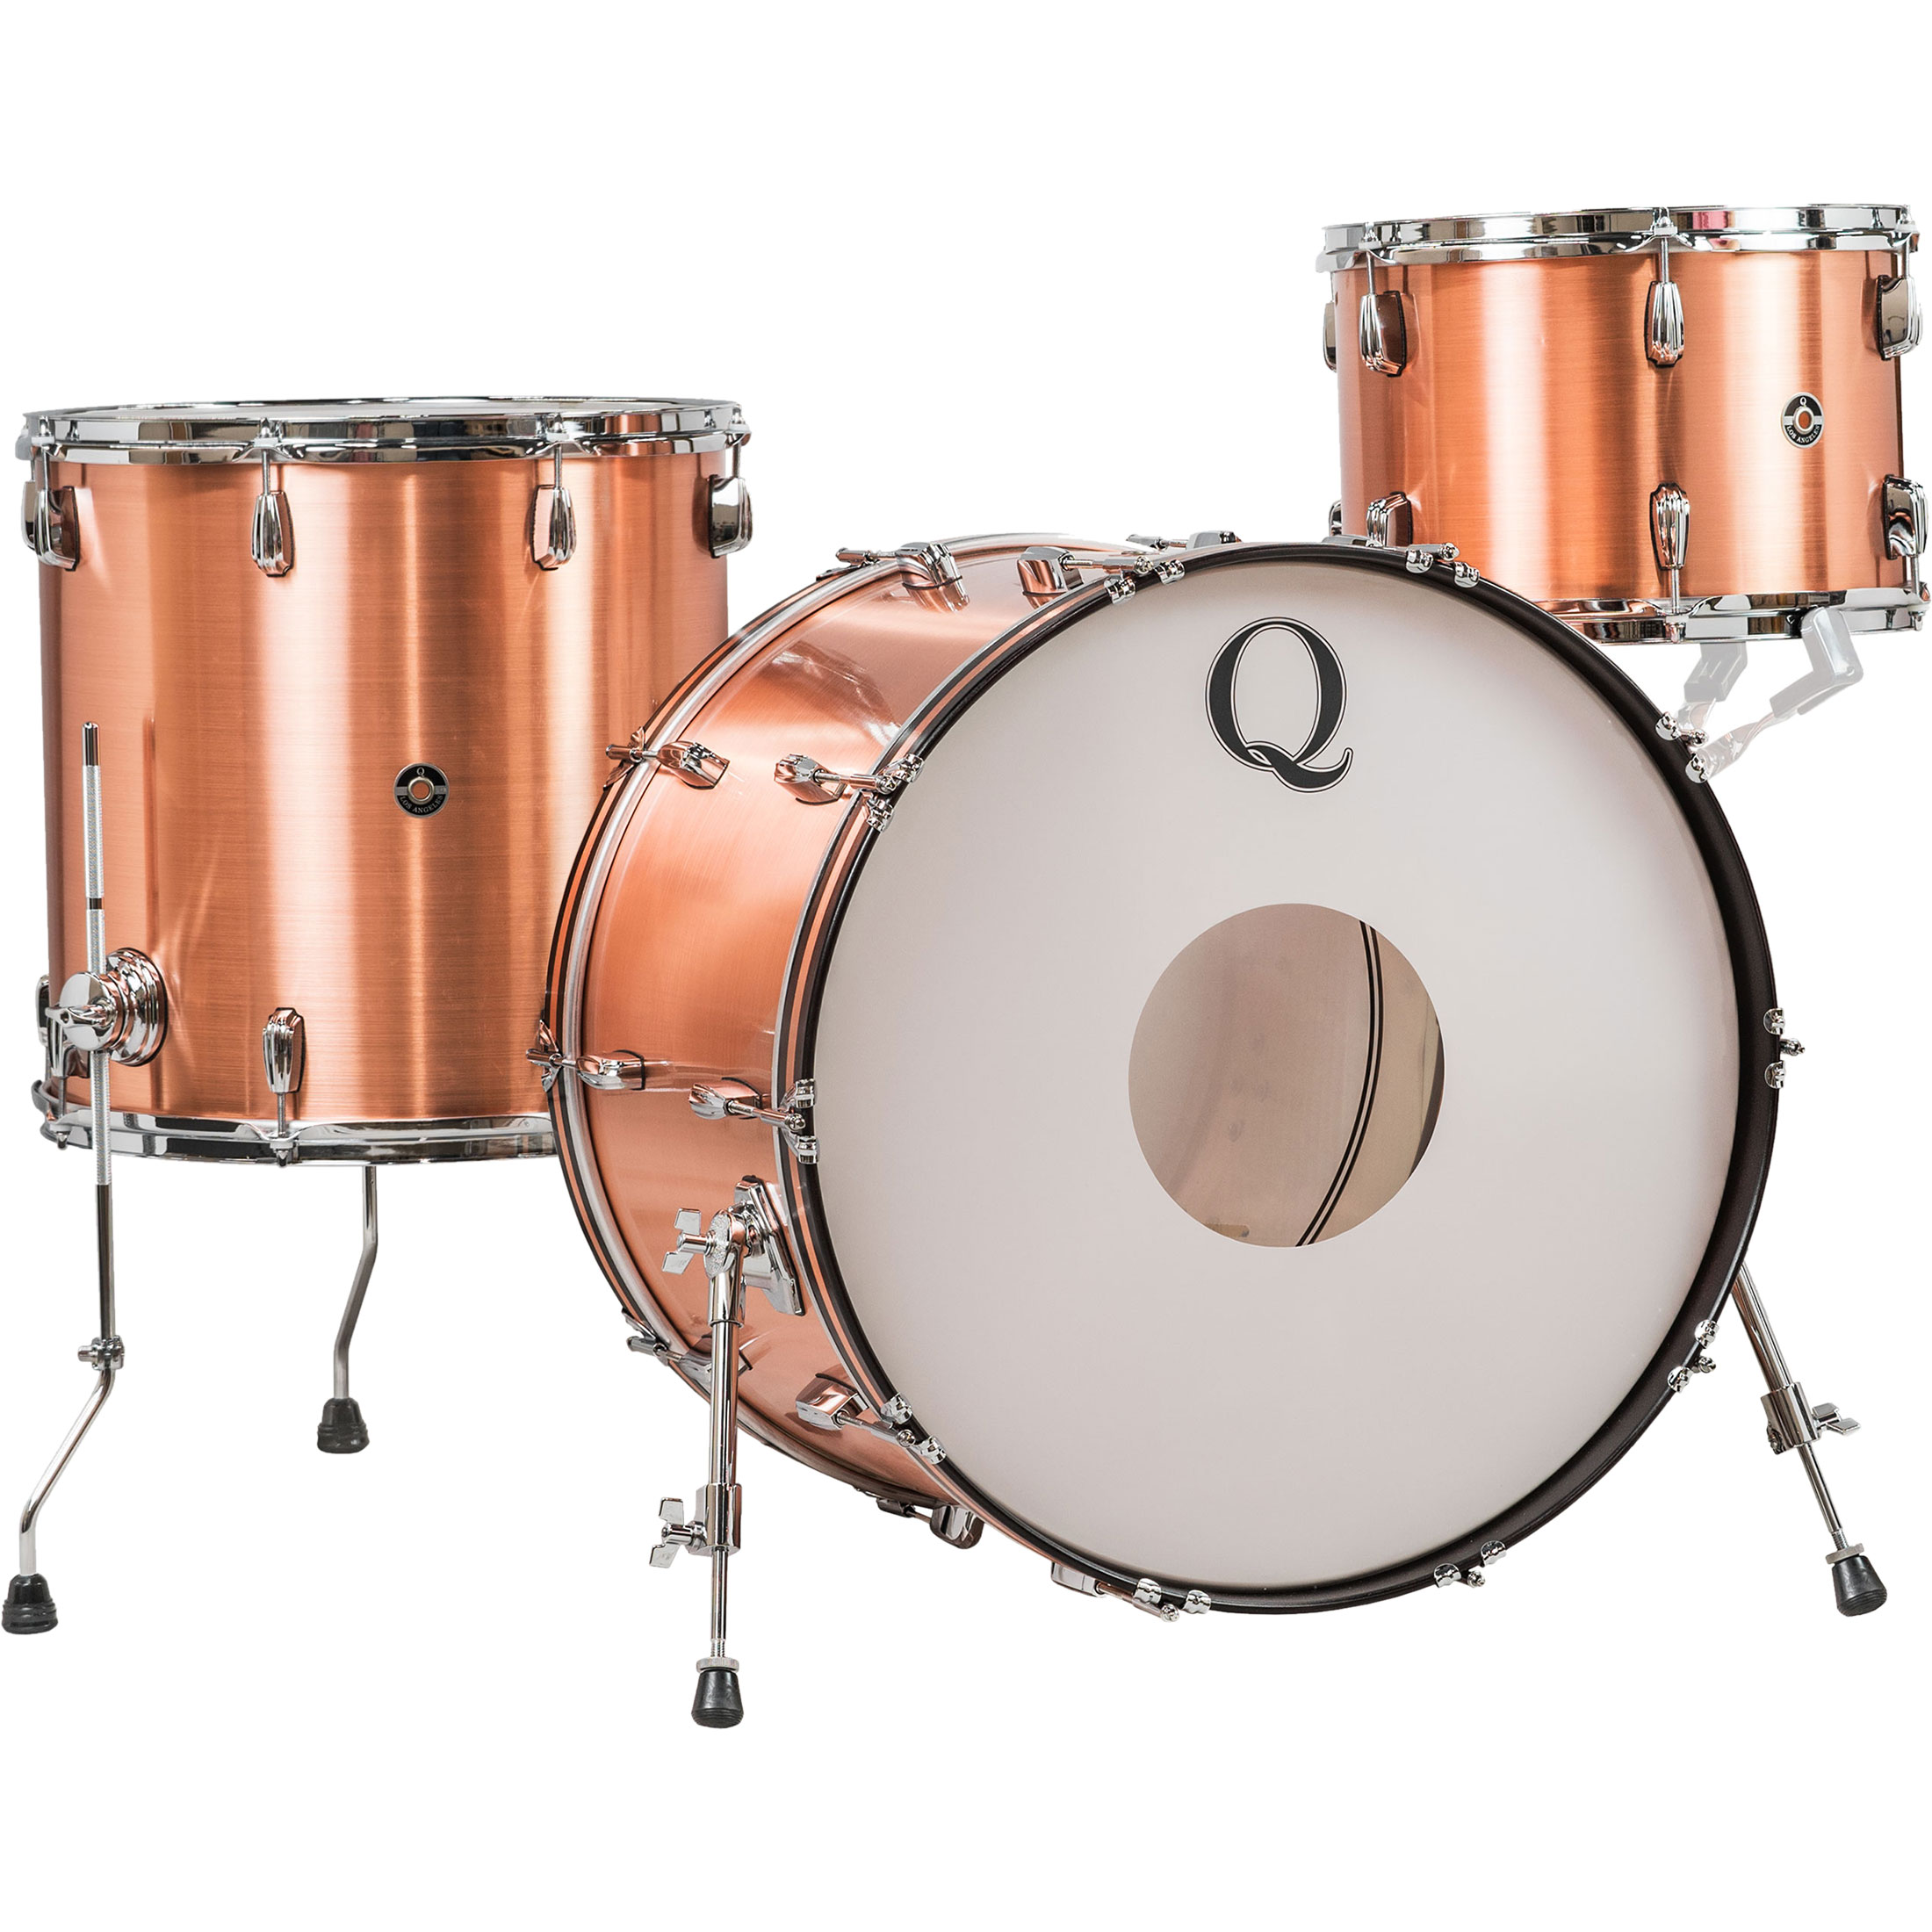 Q Drum Co. 3-Piece Raw Copper Drum Set Shell Pack (22B-13-16F)